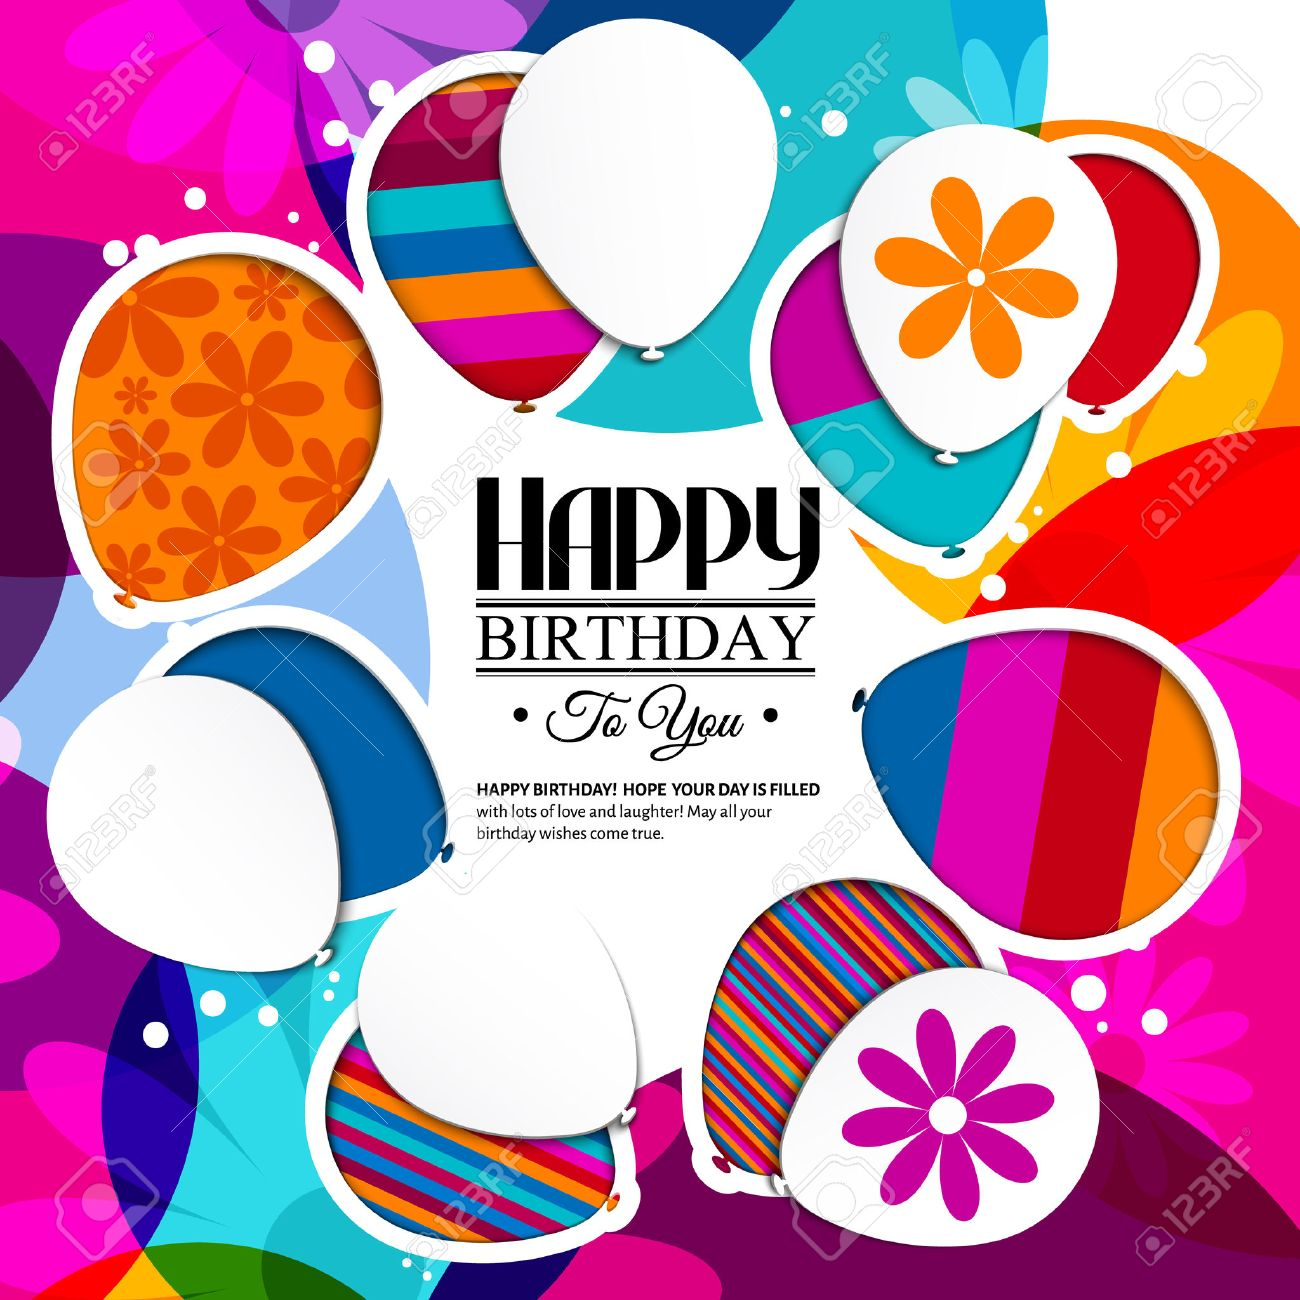 Vector birthday card with paper balloons in the style of cutouts on colorful background. - 43699773